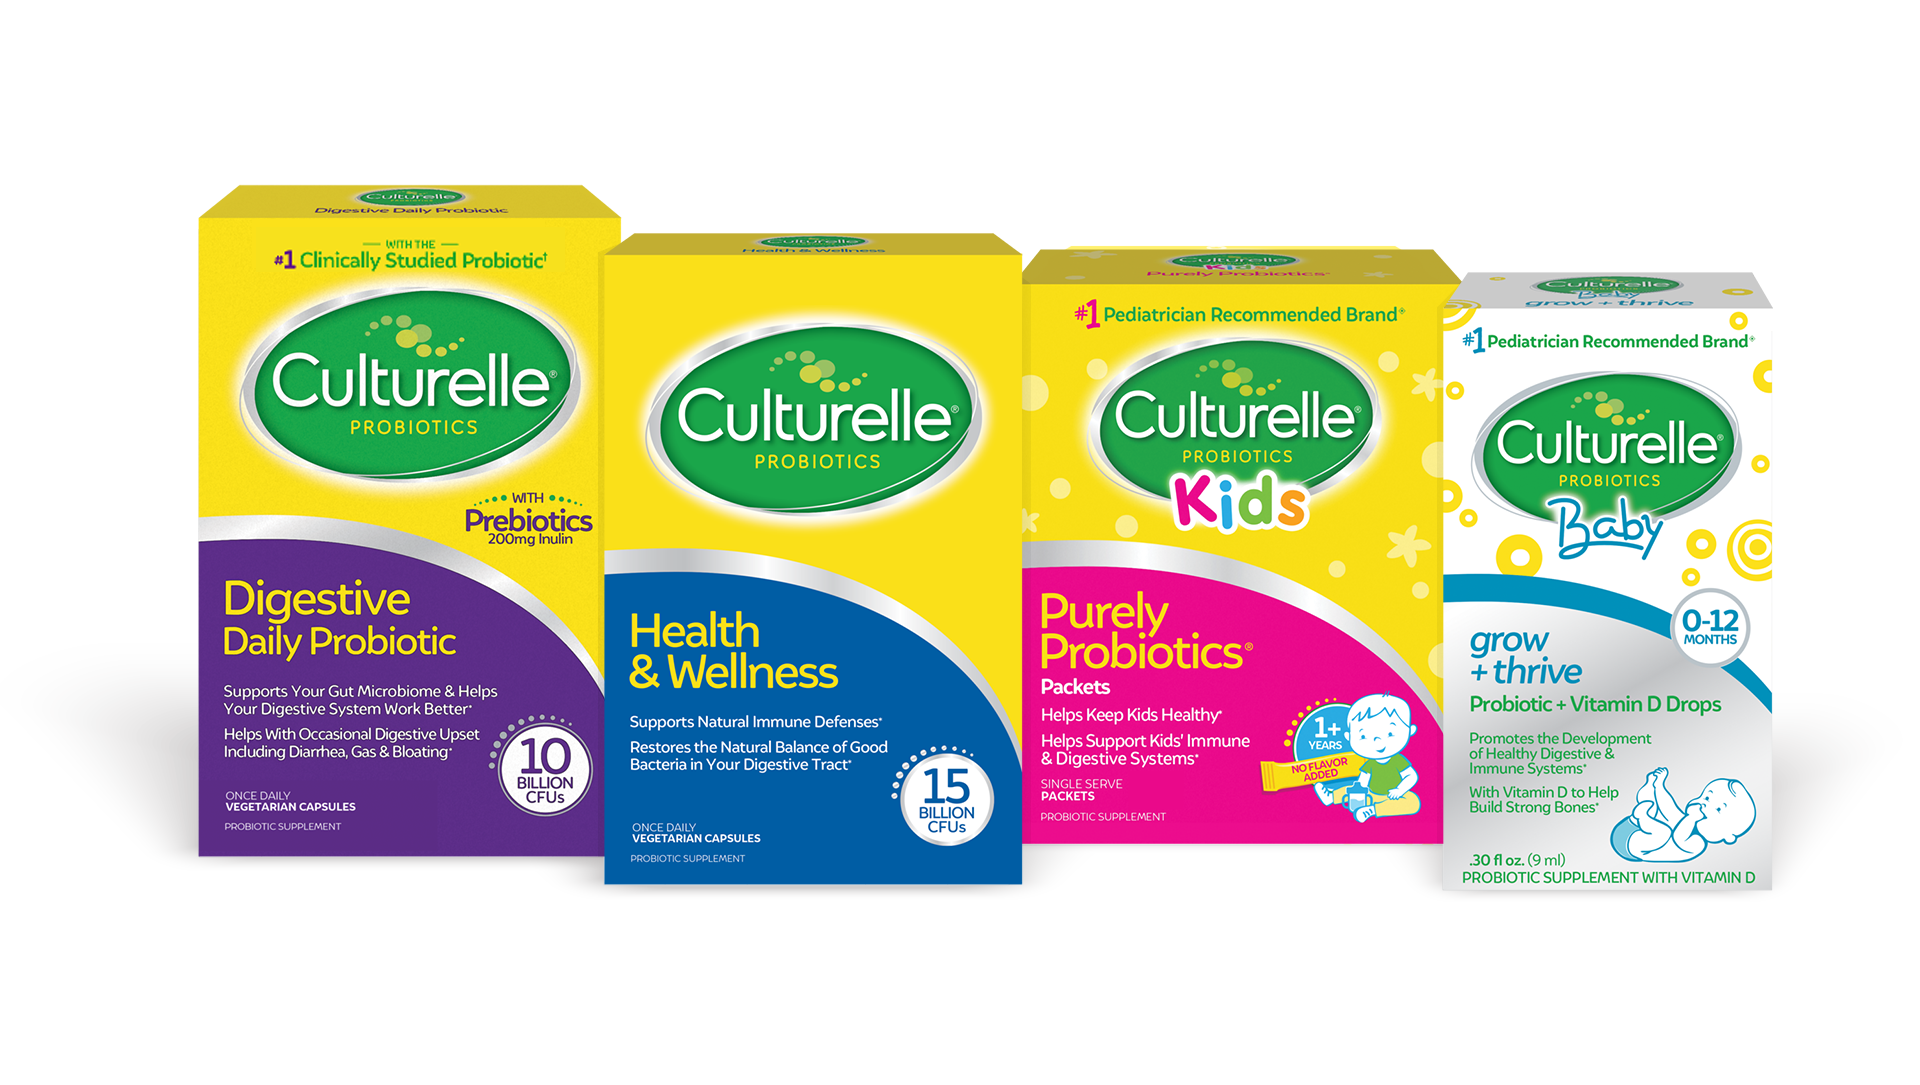 Culturelle Product Family Image